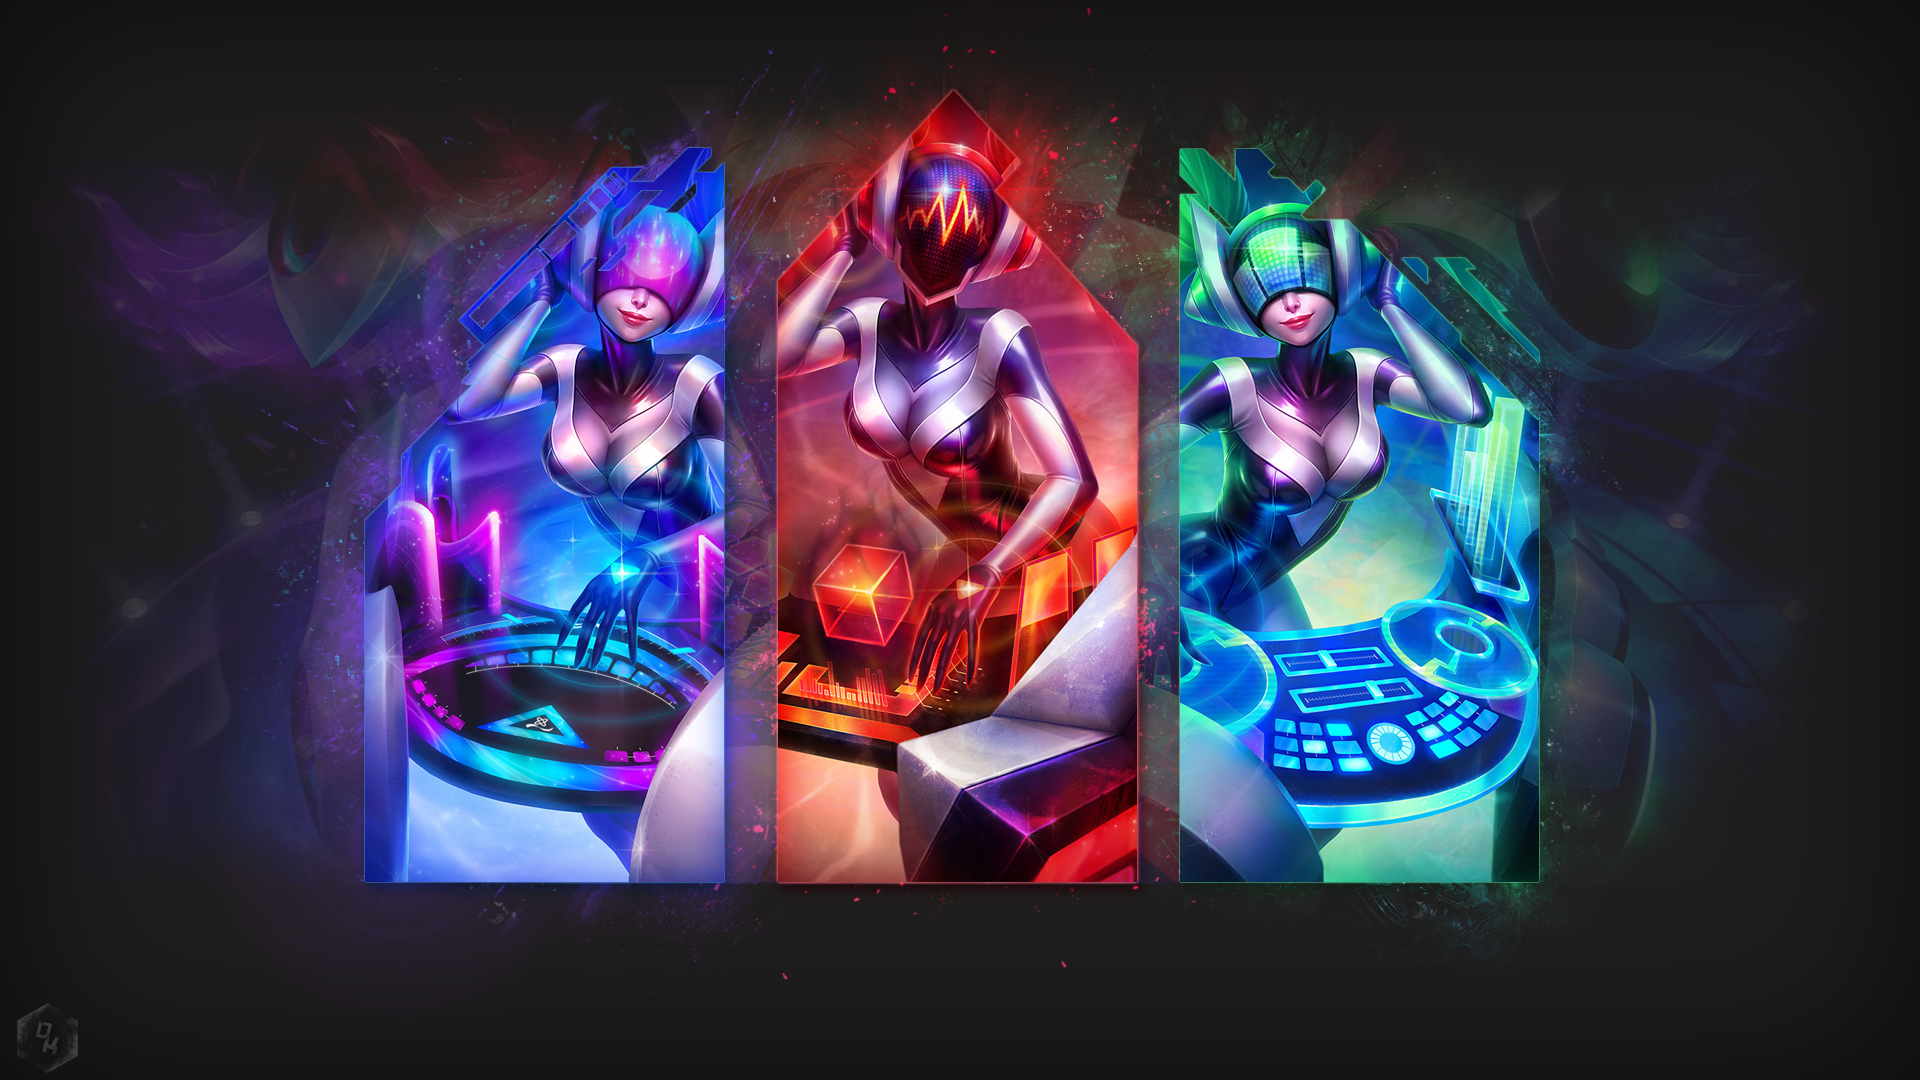 DJ Sona textless wallpaper